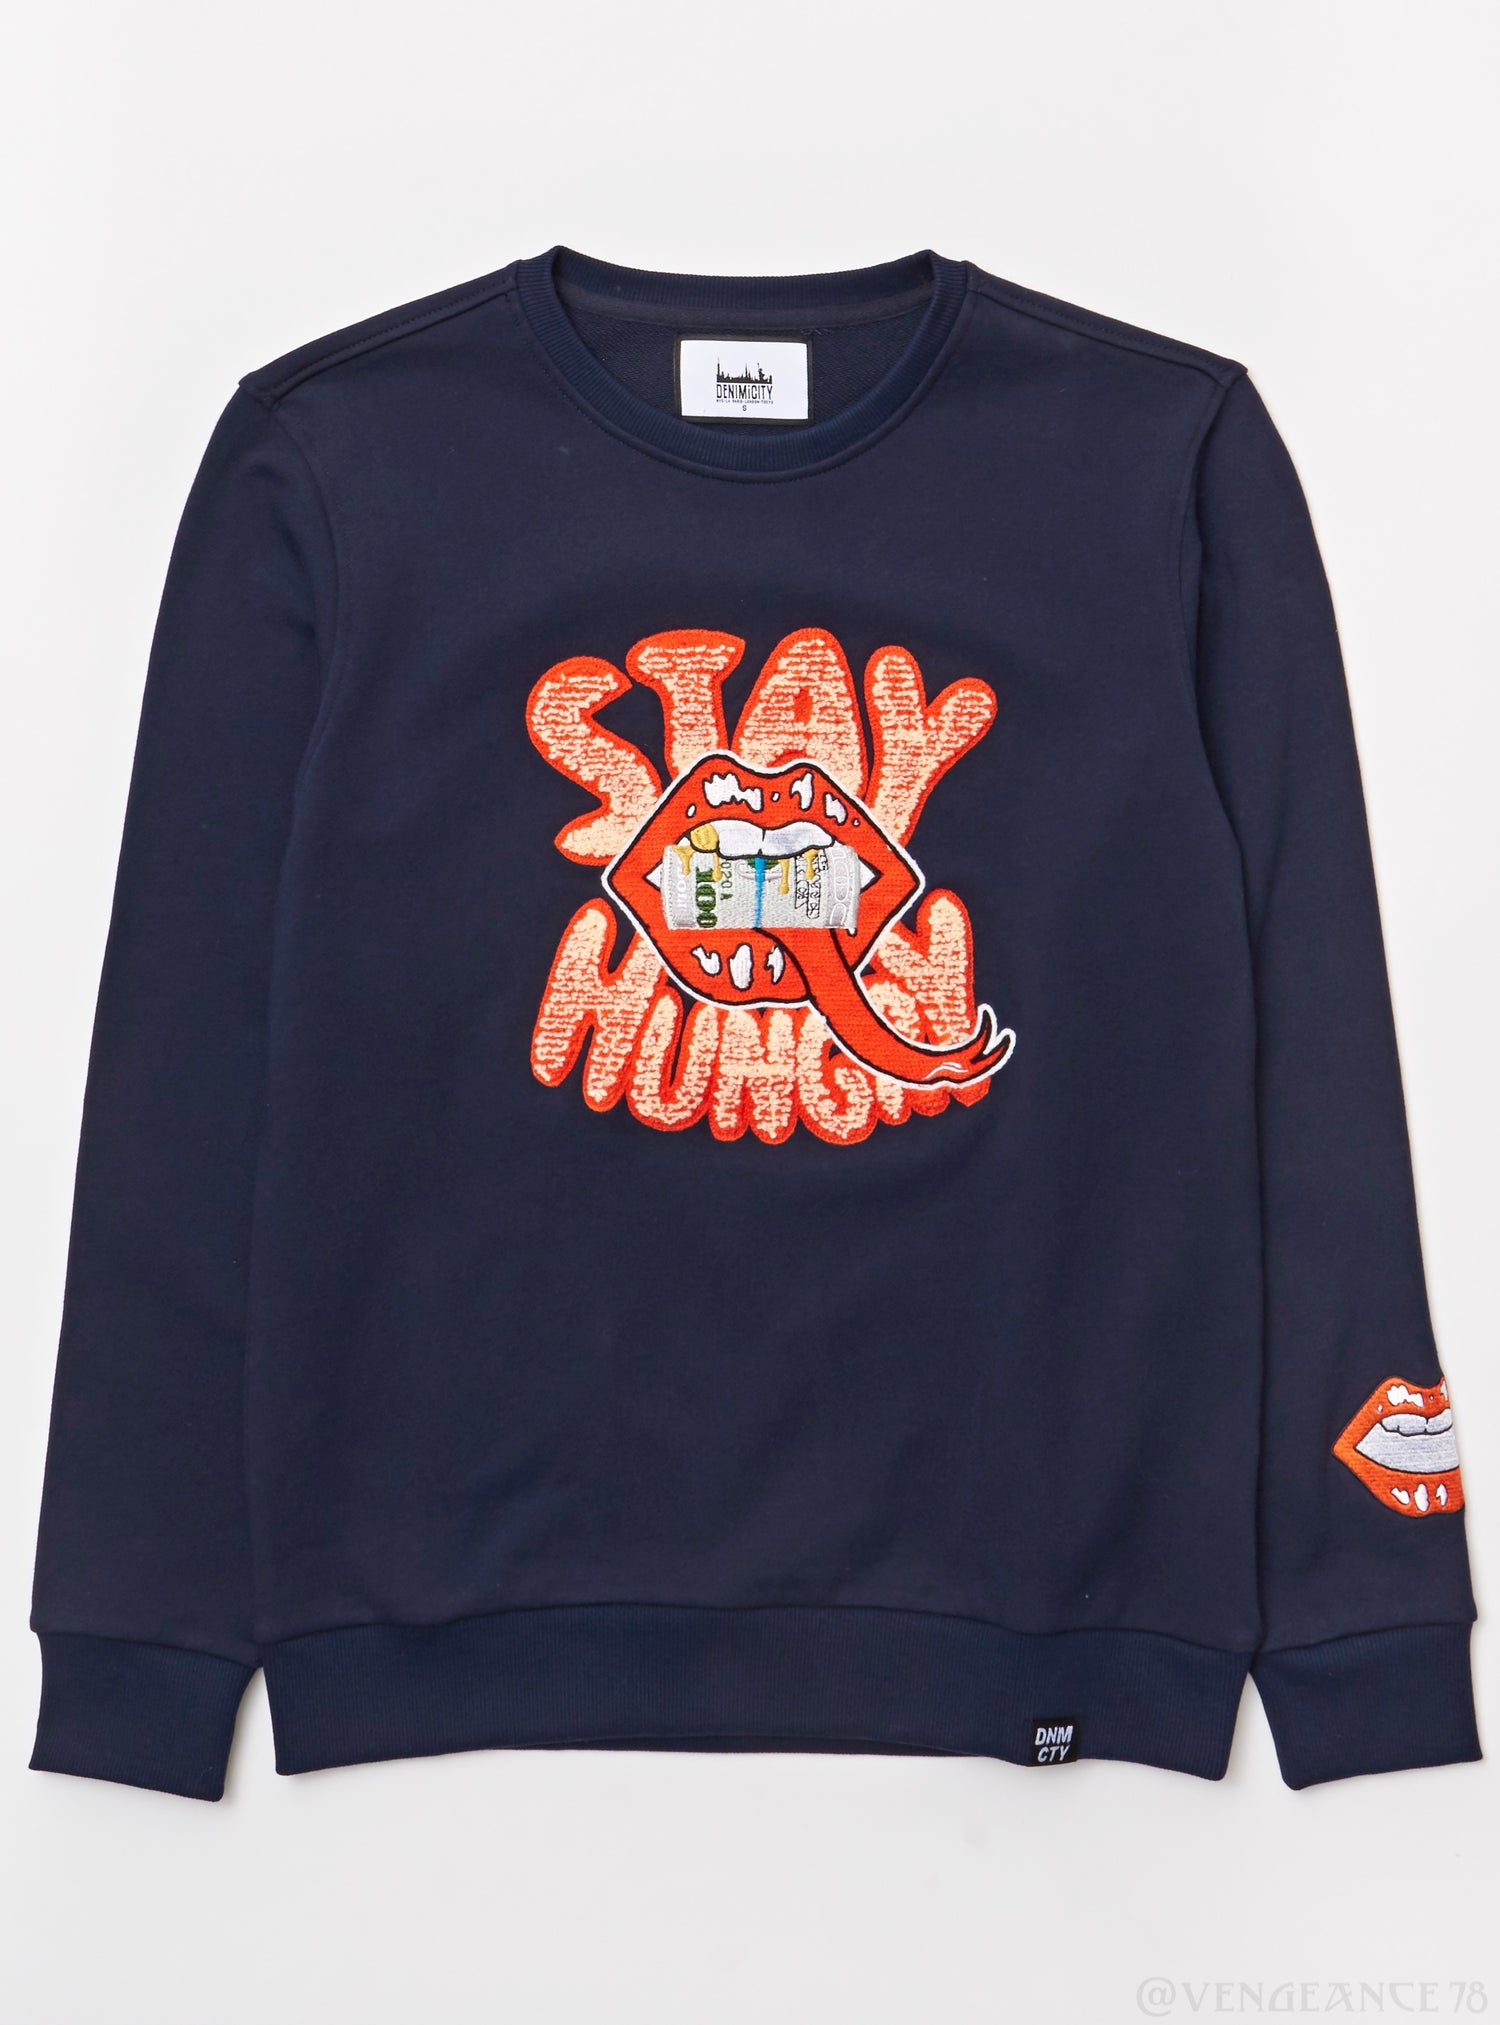 Denimi City Sweater - Stay Hungry - Navy And Orange - DNM-7702